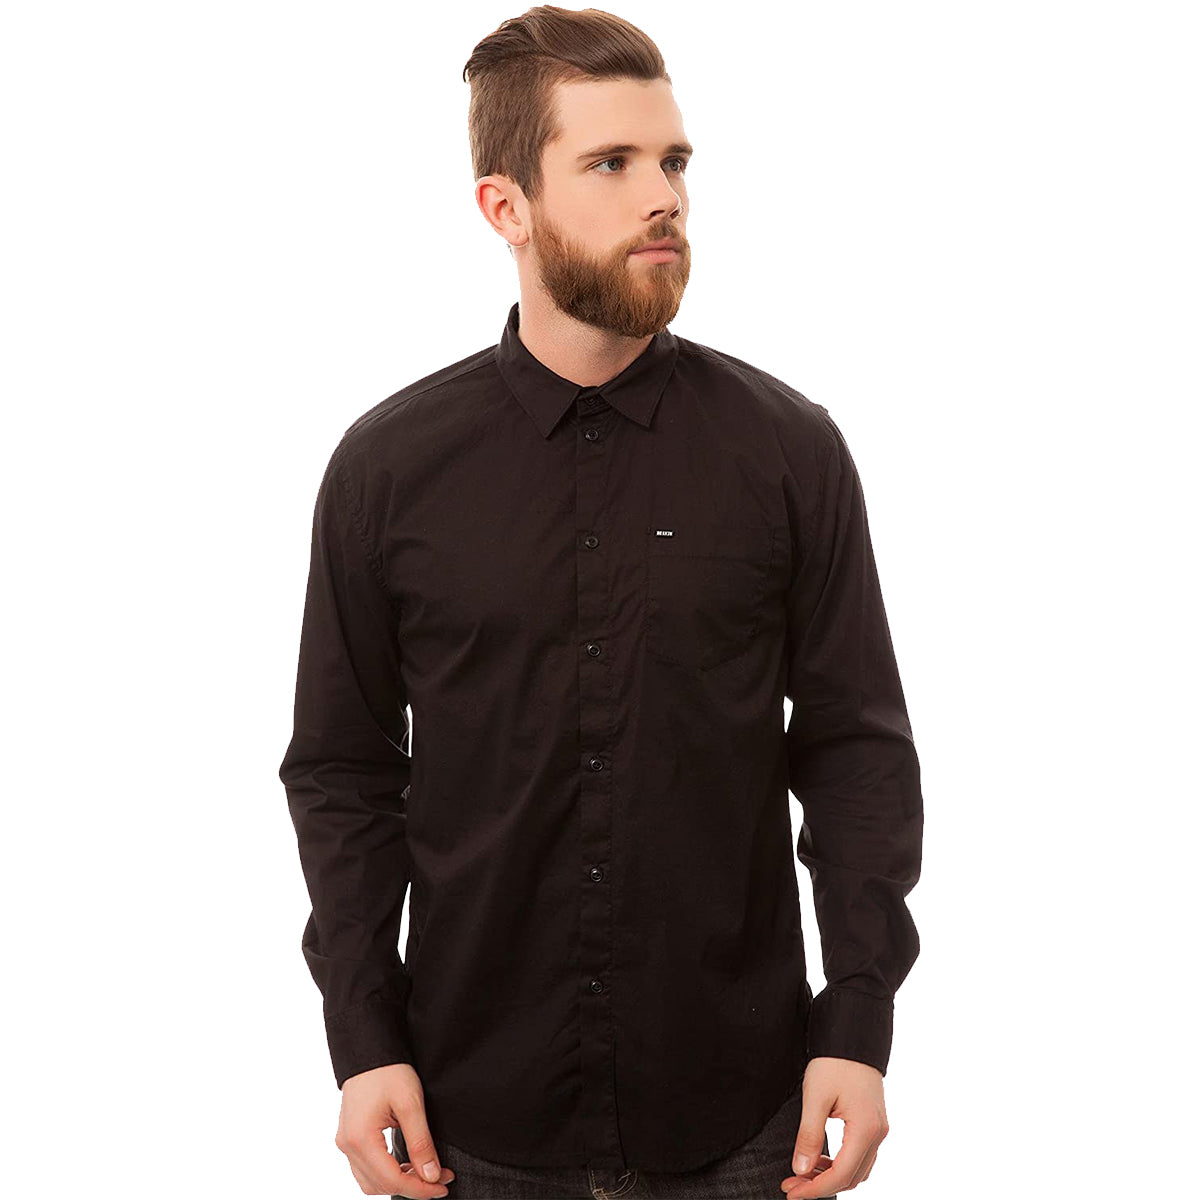 KR3W Fuego Woven Men's Button Up Long-Sleeve Shirts-K15318